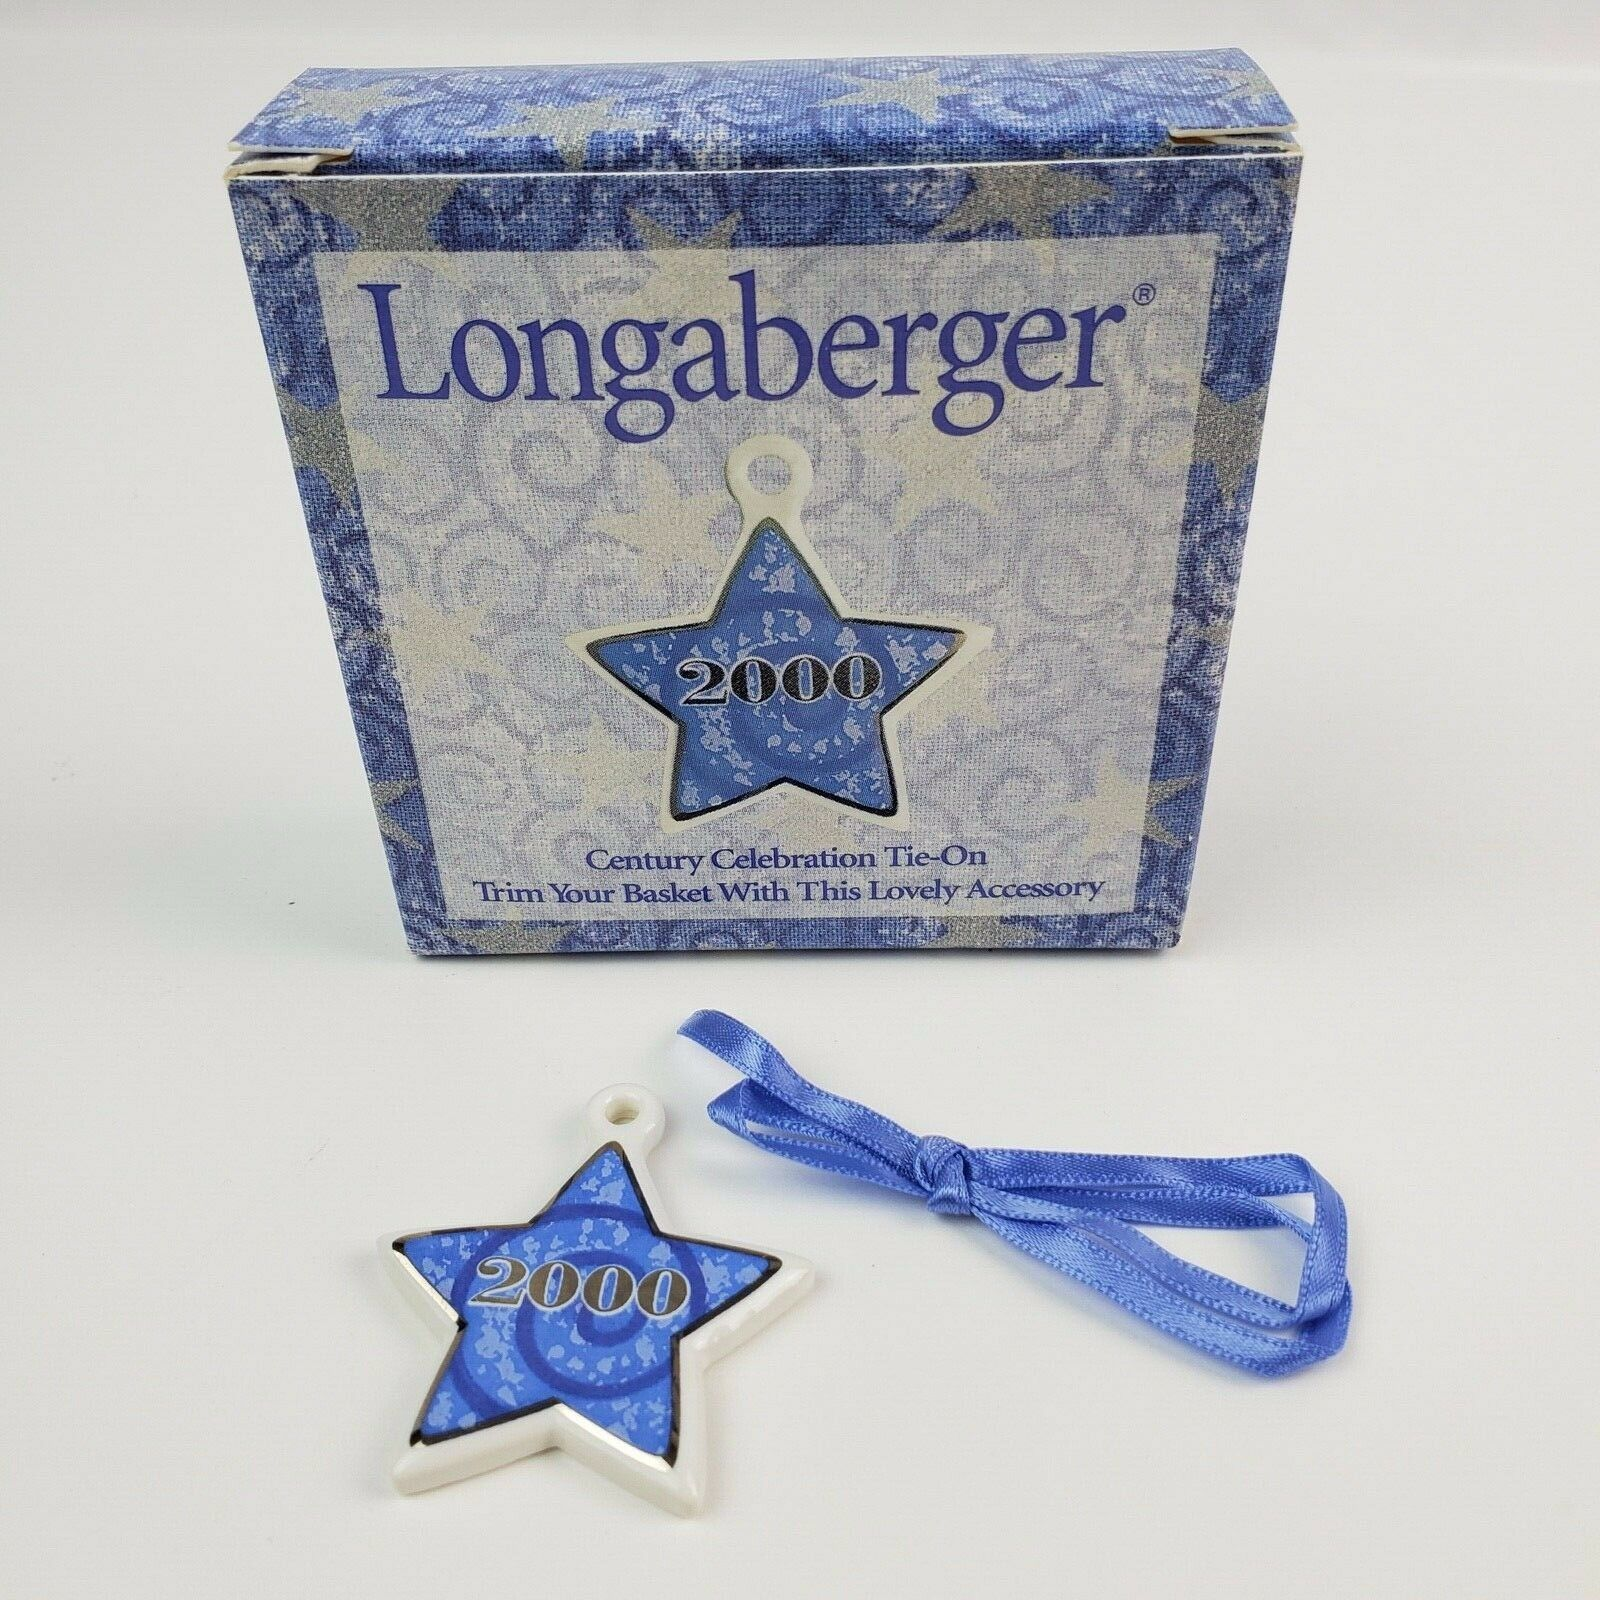 Primary image for New in box Longaberger Basket Tie-On Year 2000 Porcelain Star Blue & white